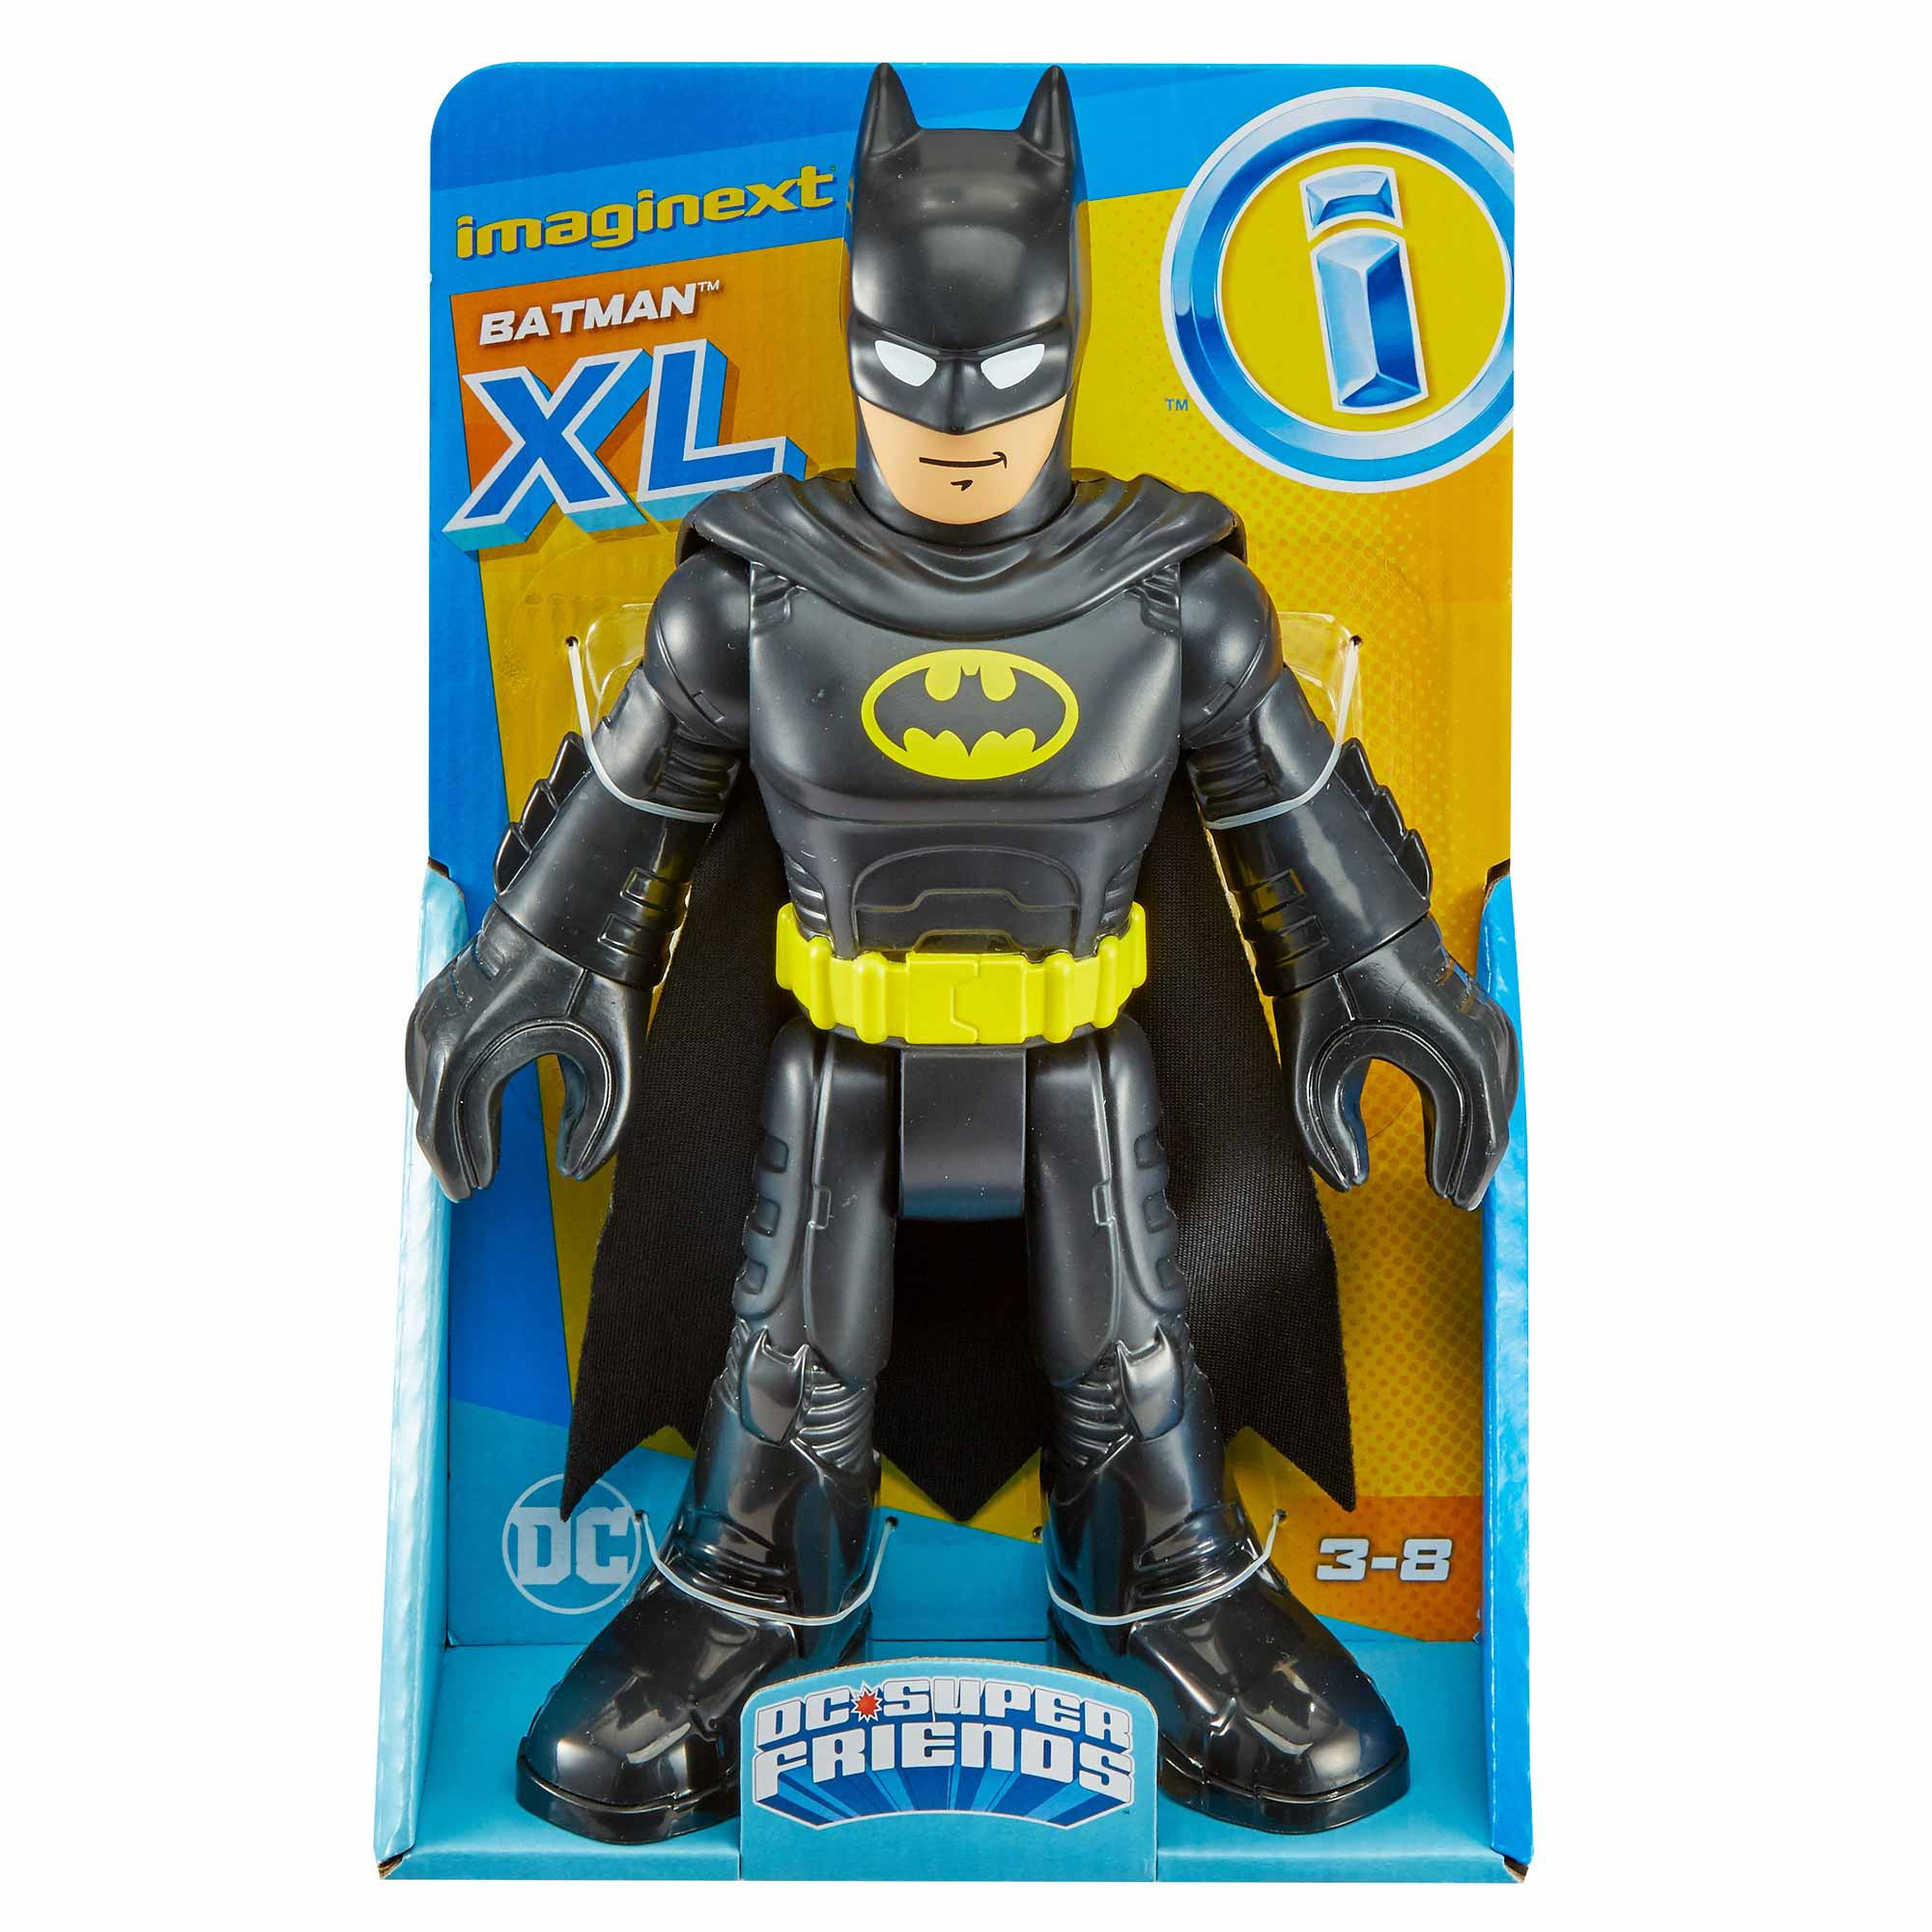 Imaginext DC Super Friends Batman XL